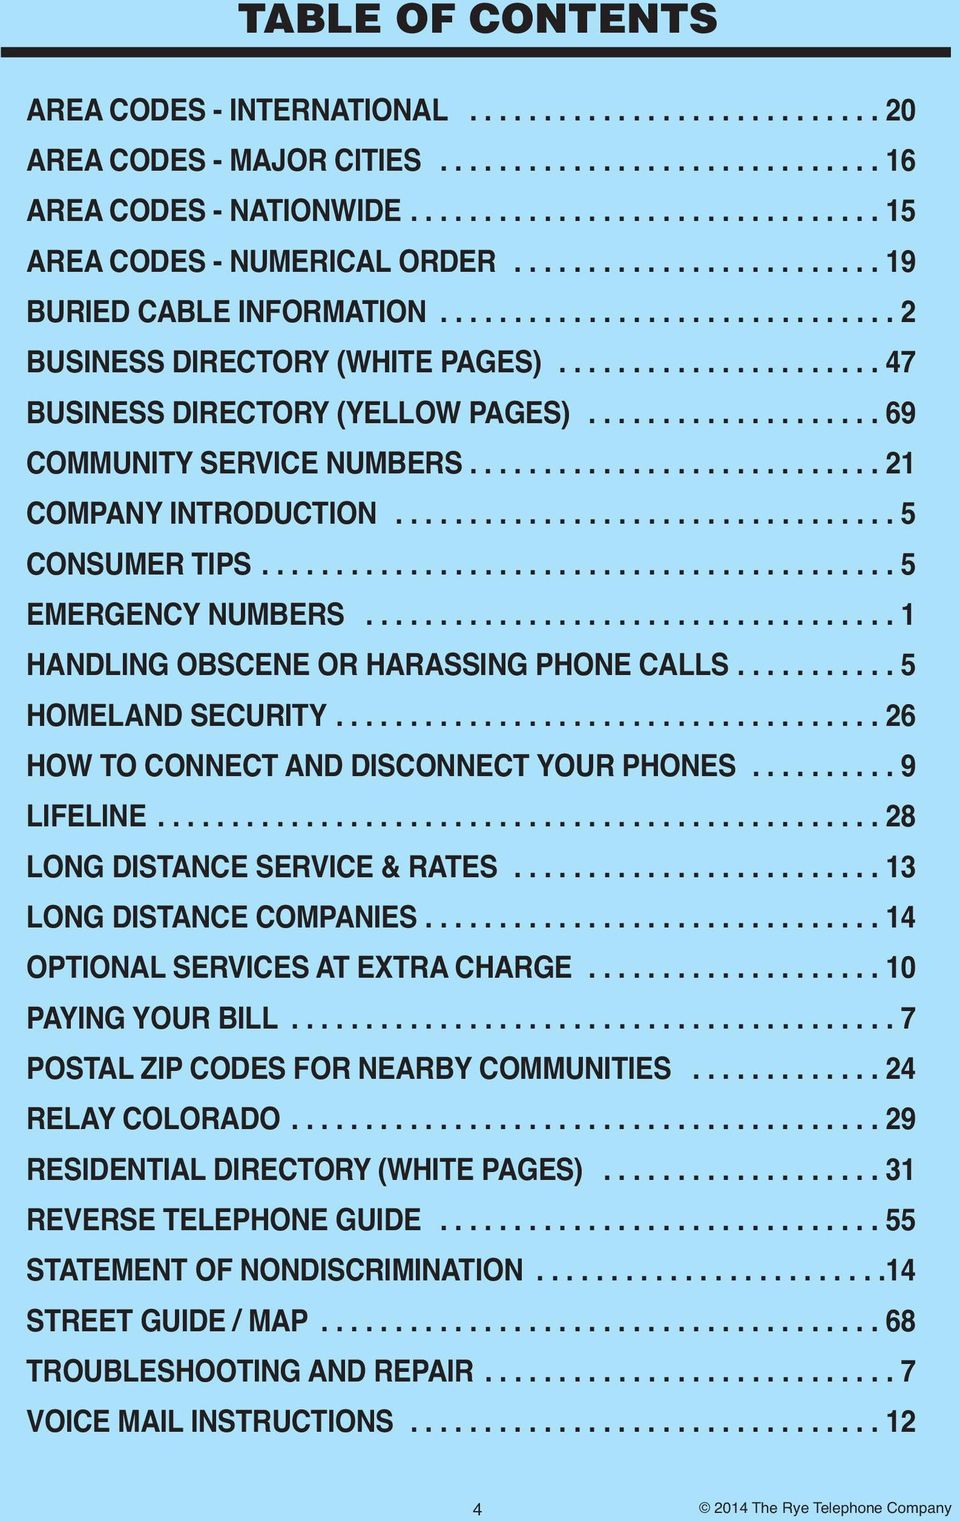 ................... 69 COMMUNITY SERVICE NUMBERS............................ 21 COMPANY INTRODUCTION.................................. 5 CONSUMER TIPS........................................... 5 EMERGENCY NUMBERS.